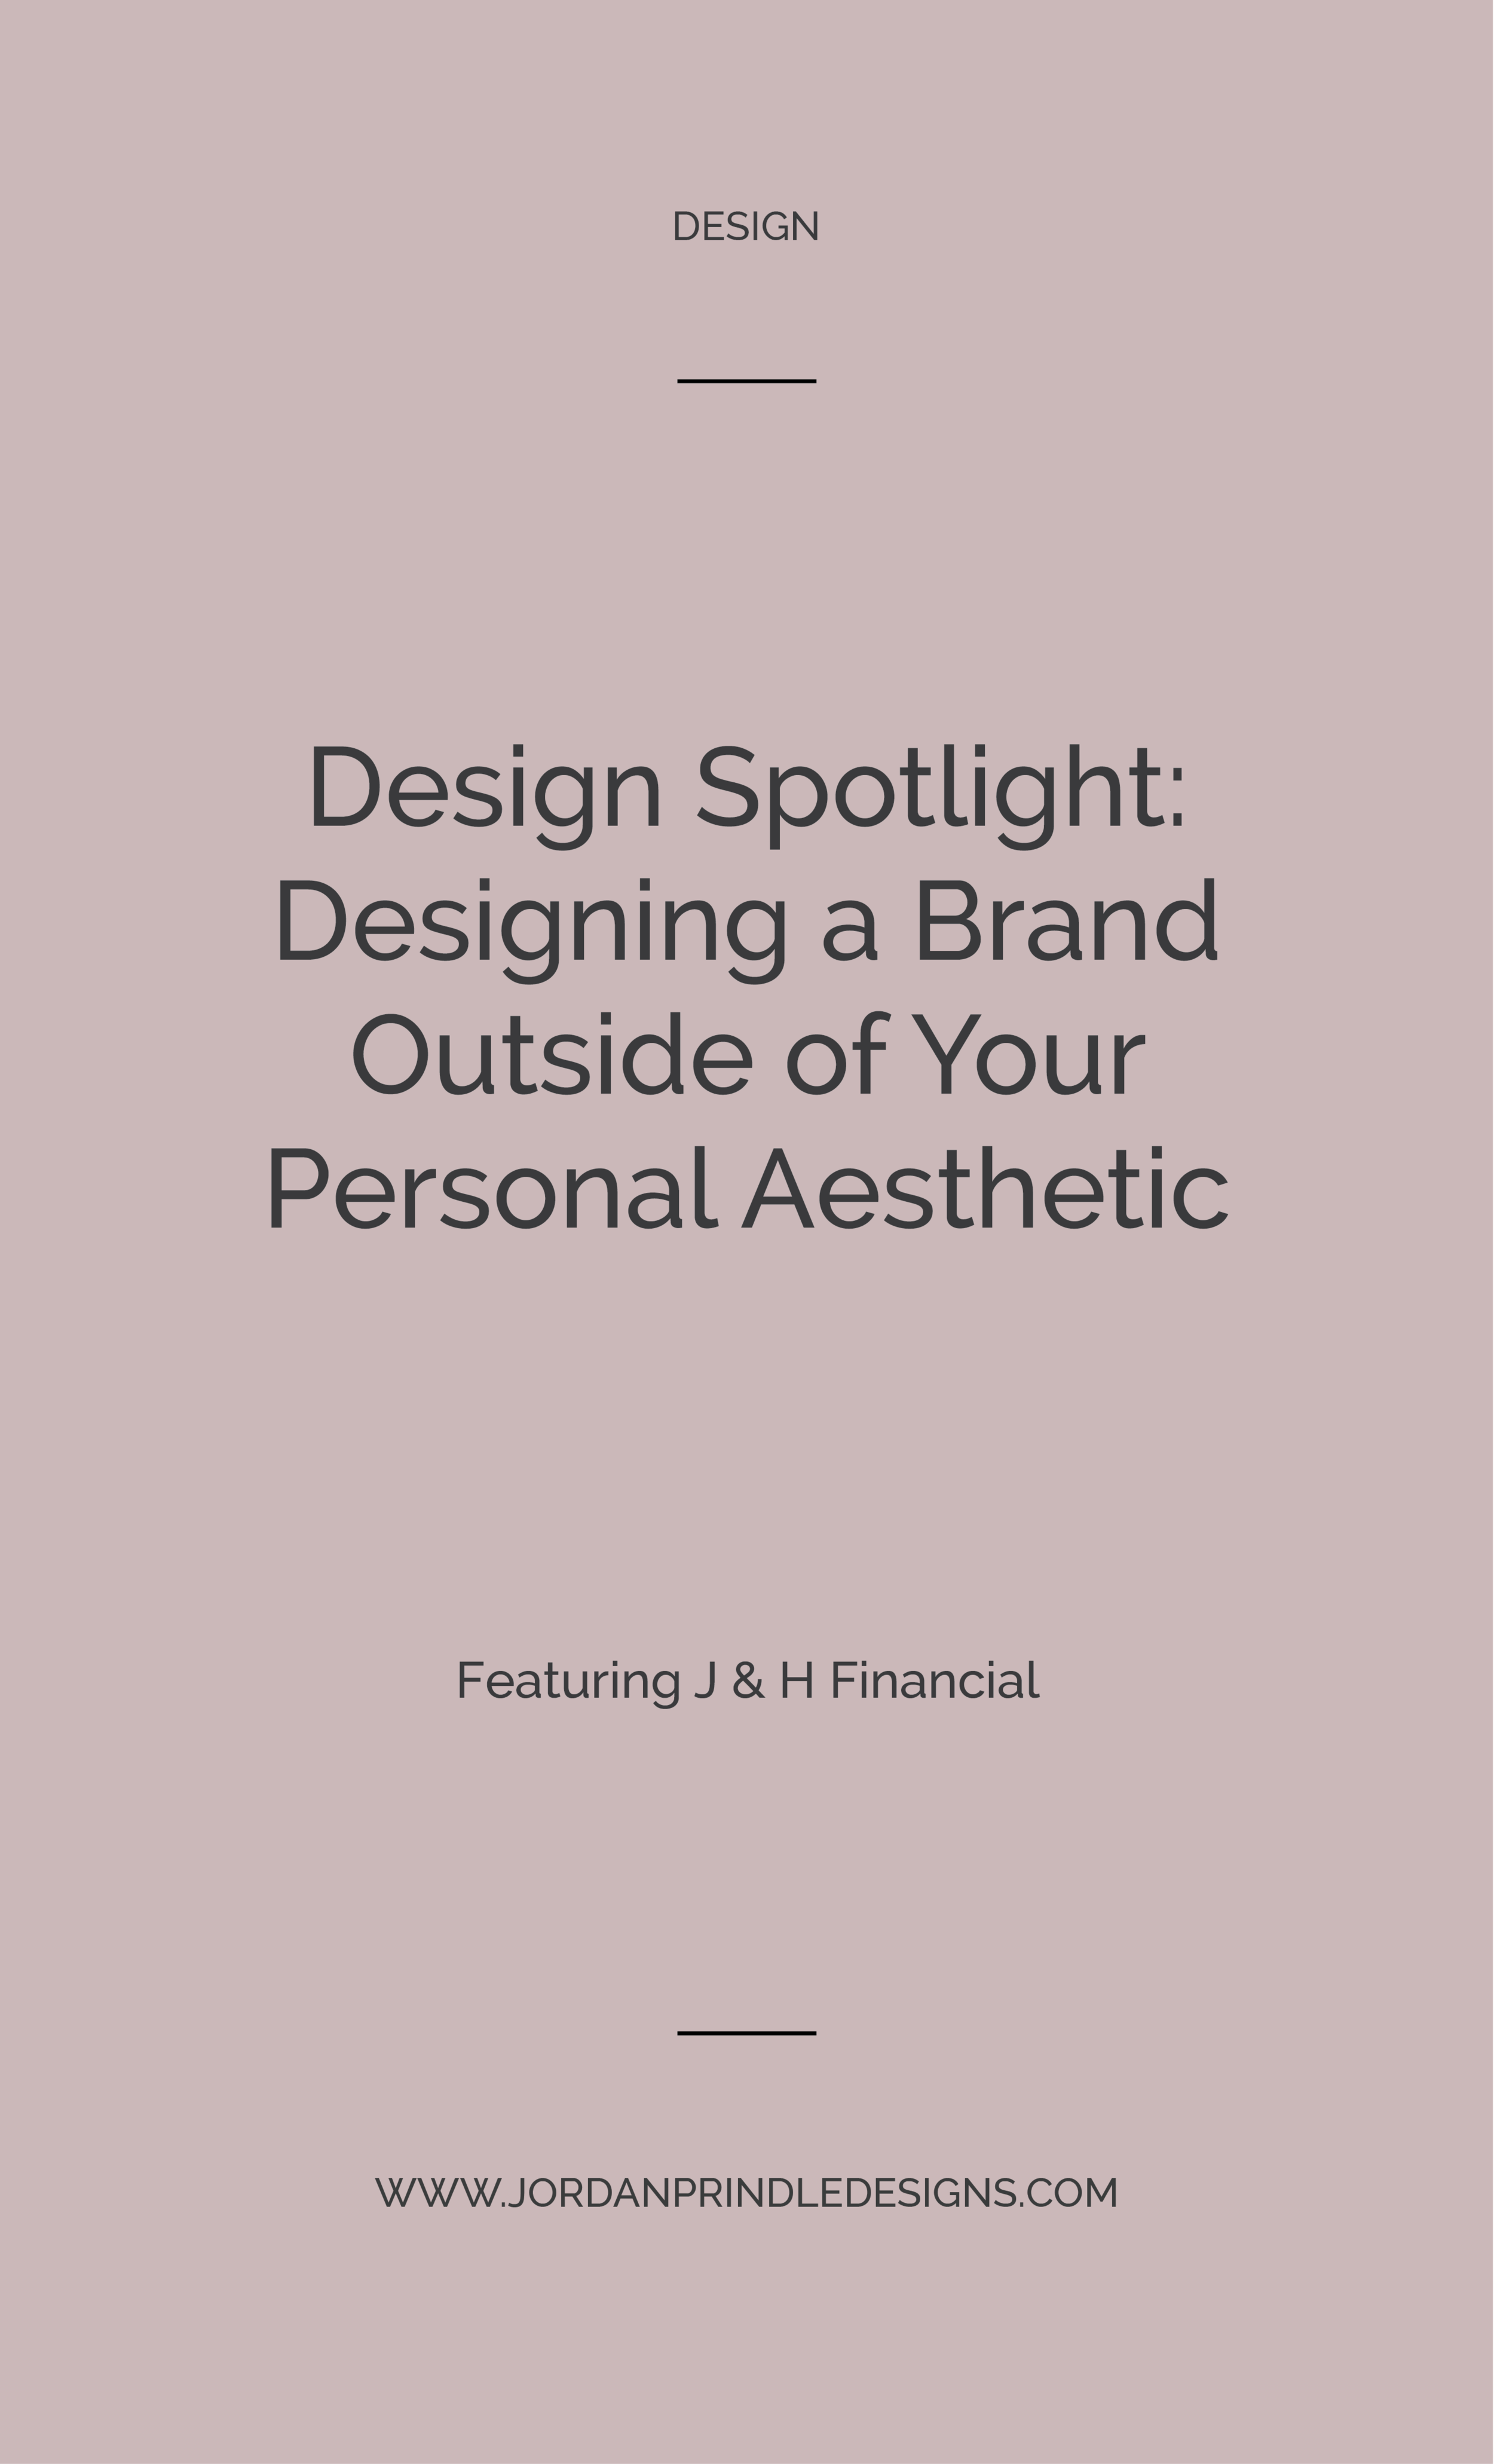 Design Spotlight: J & H Financial | This entire post highlights the benefits of taking on clients and projects outside of your comfort zone. Read the full post at www.jordanprindledesigns.com #branddesign #custombranding #designtips